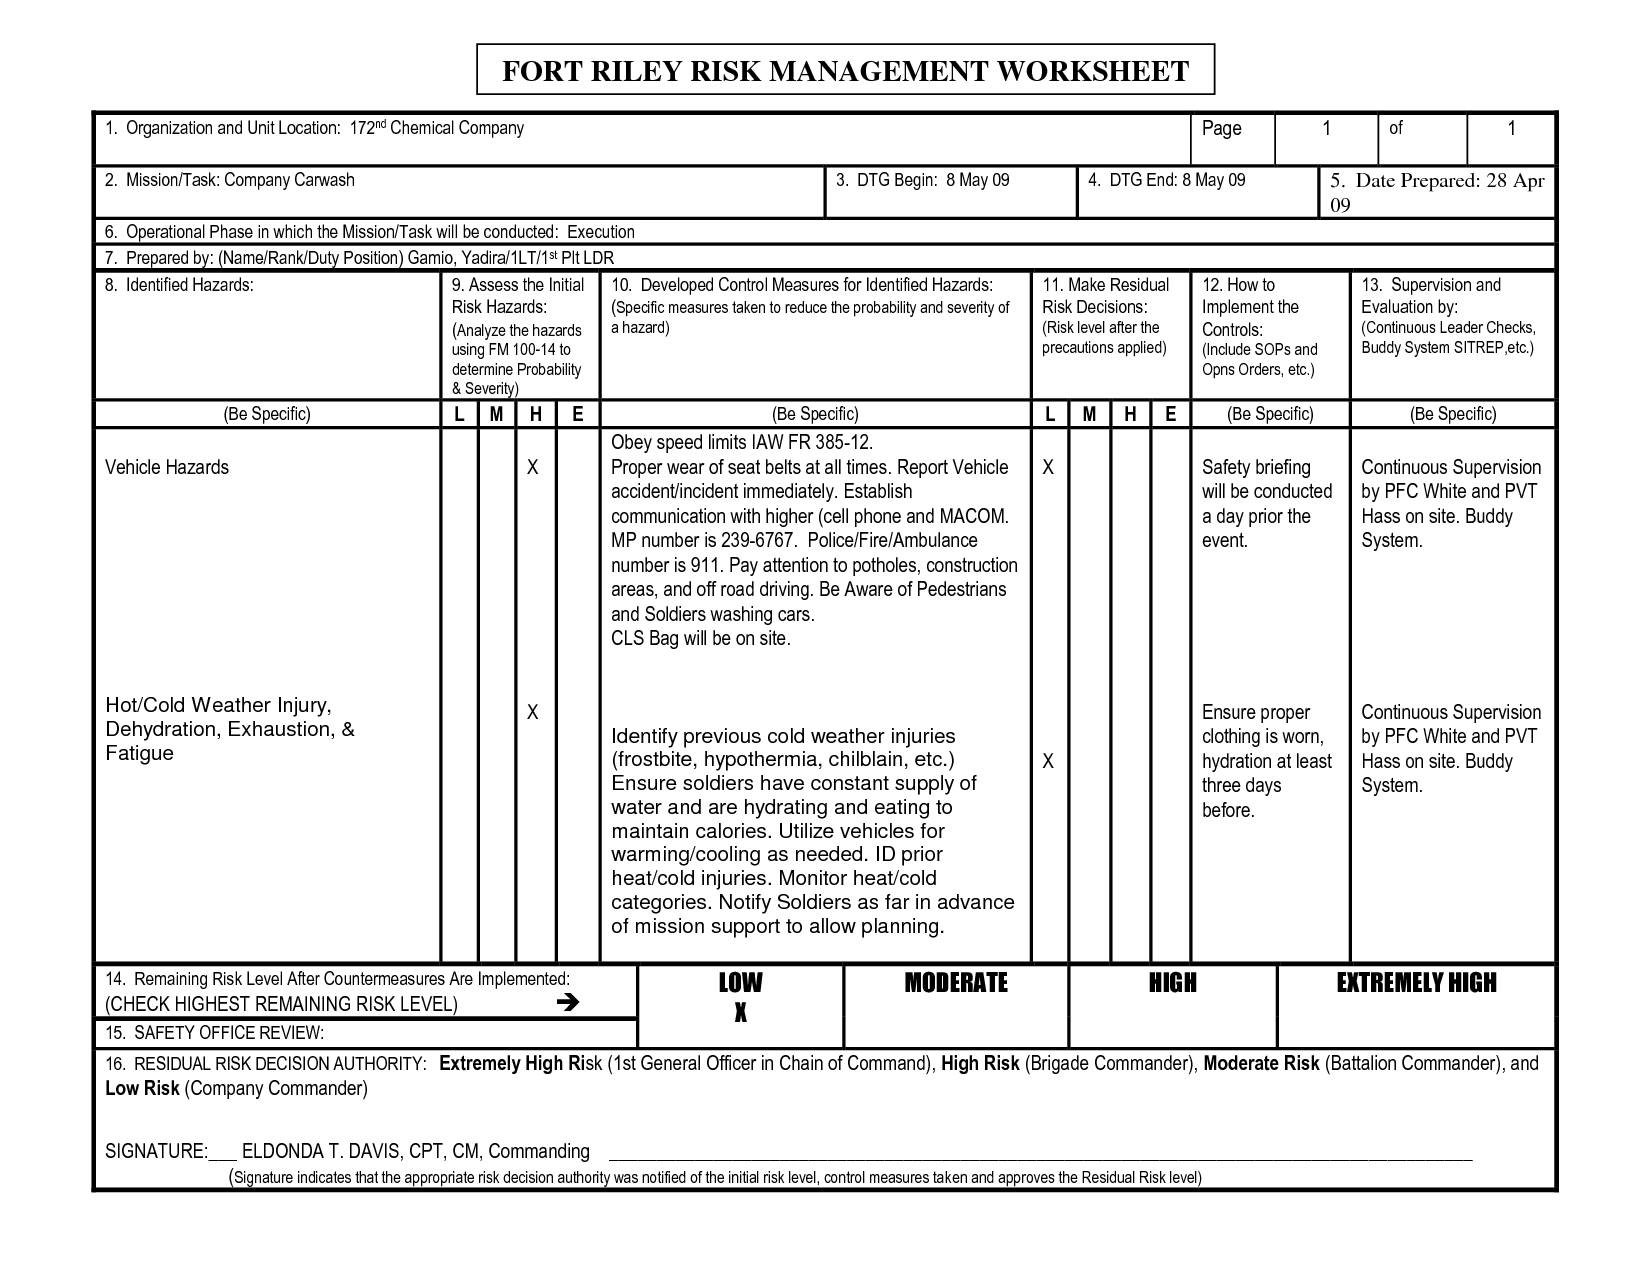 Army Composite Risk Assessment Matrix Pictures To Pin On